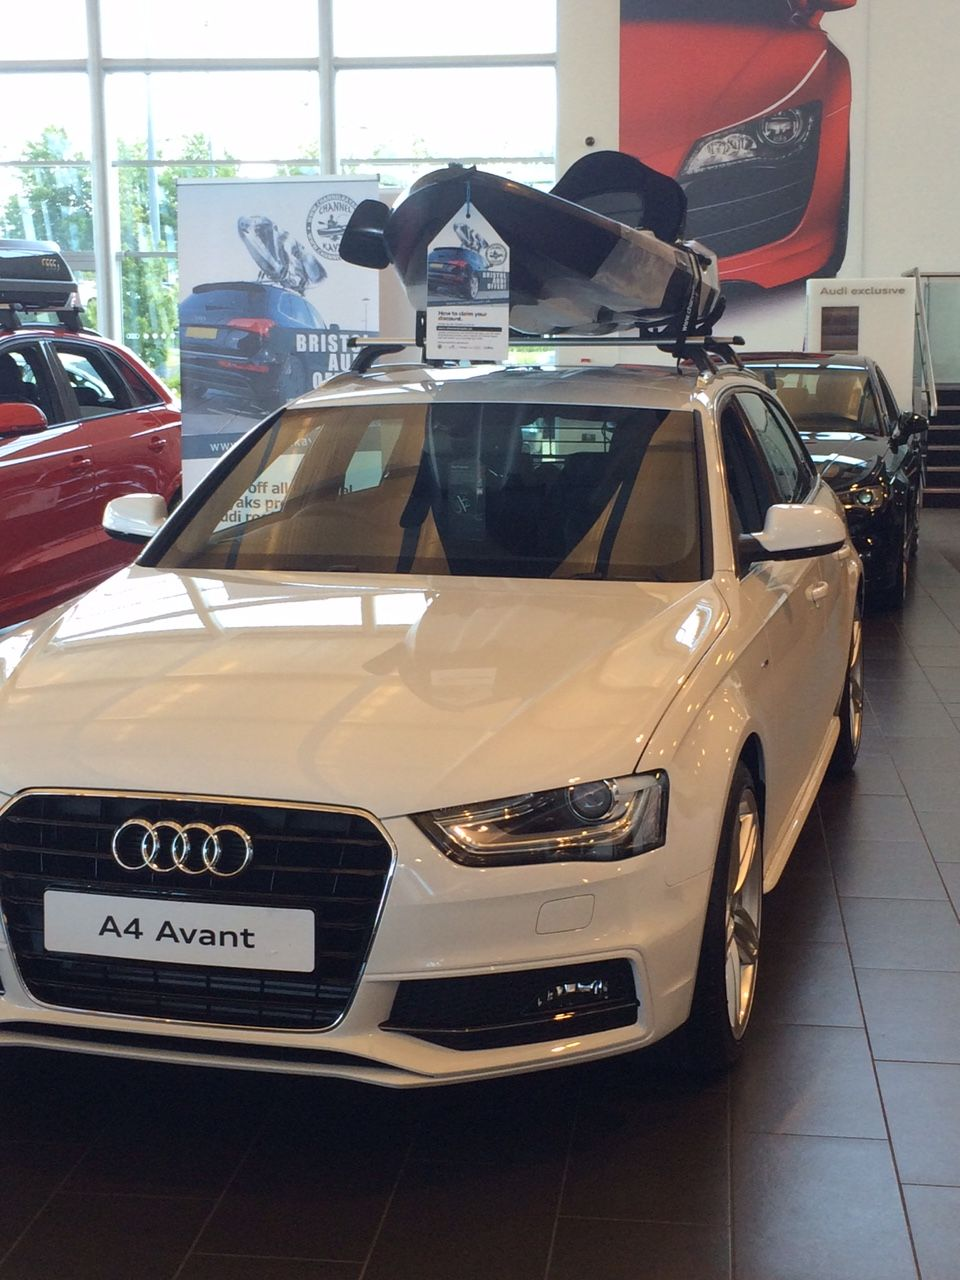 Channel kayaks bass on the A4 at Bristol Audi | Kayaks and ...